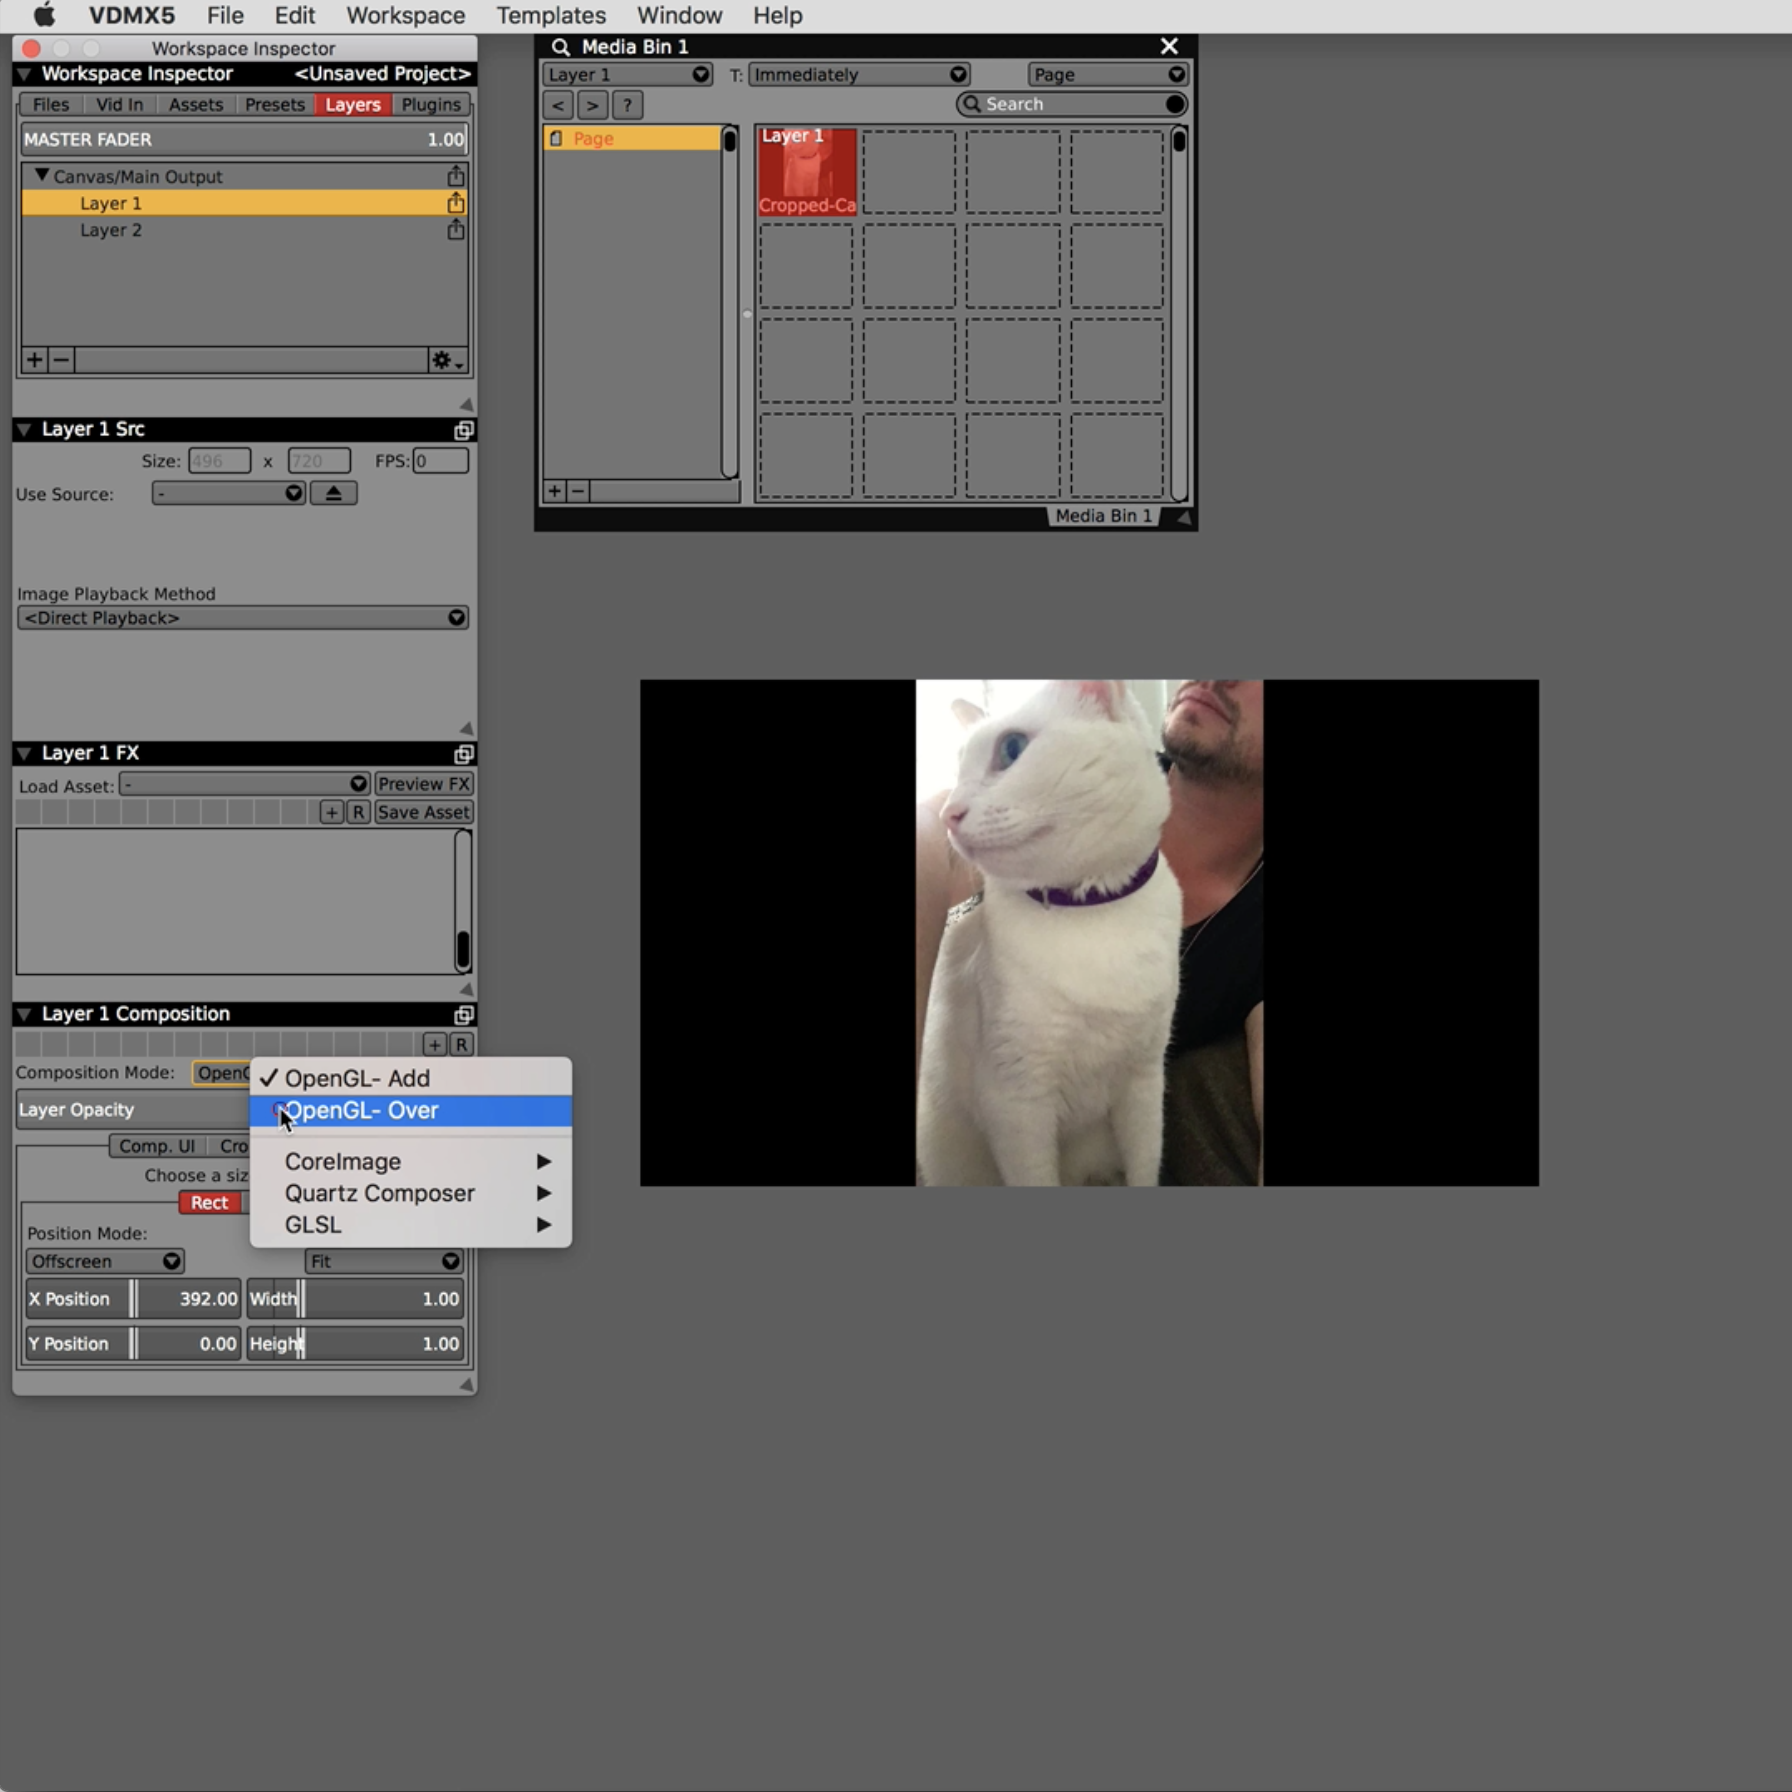 Use OpenGL- Over mode for the top layer.